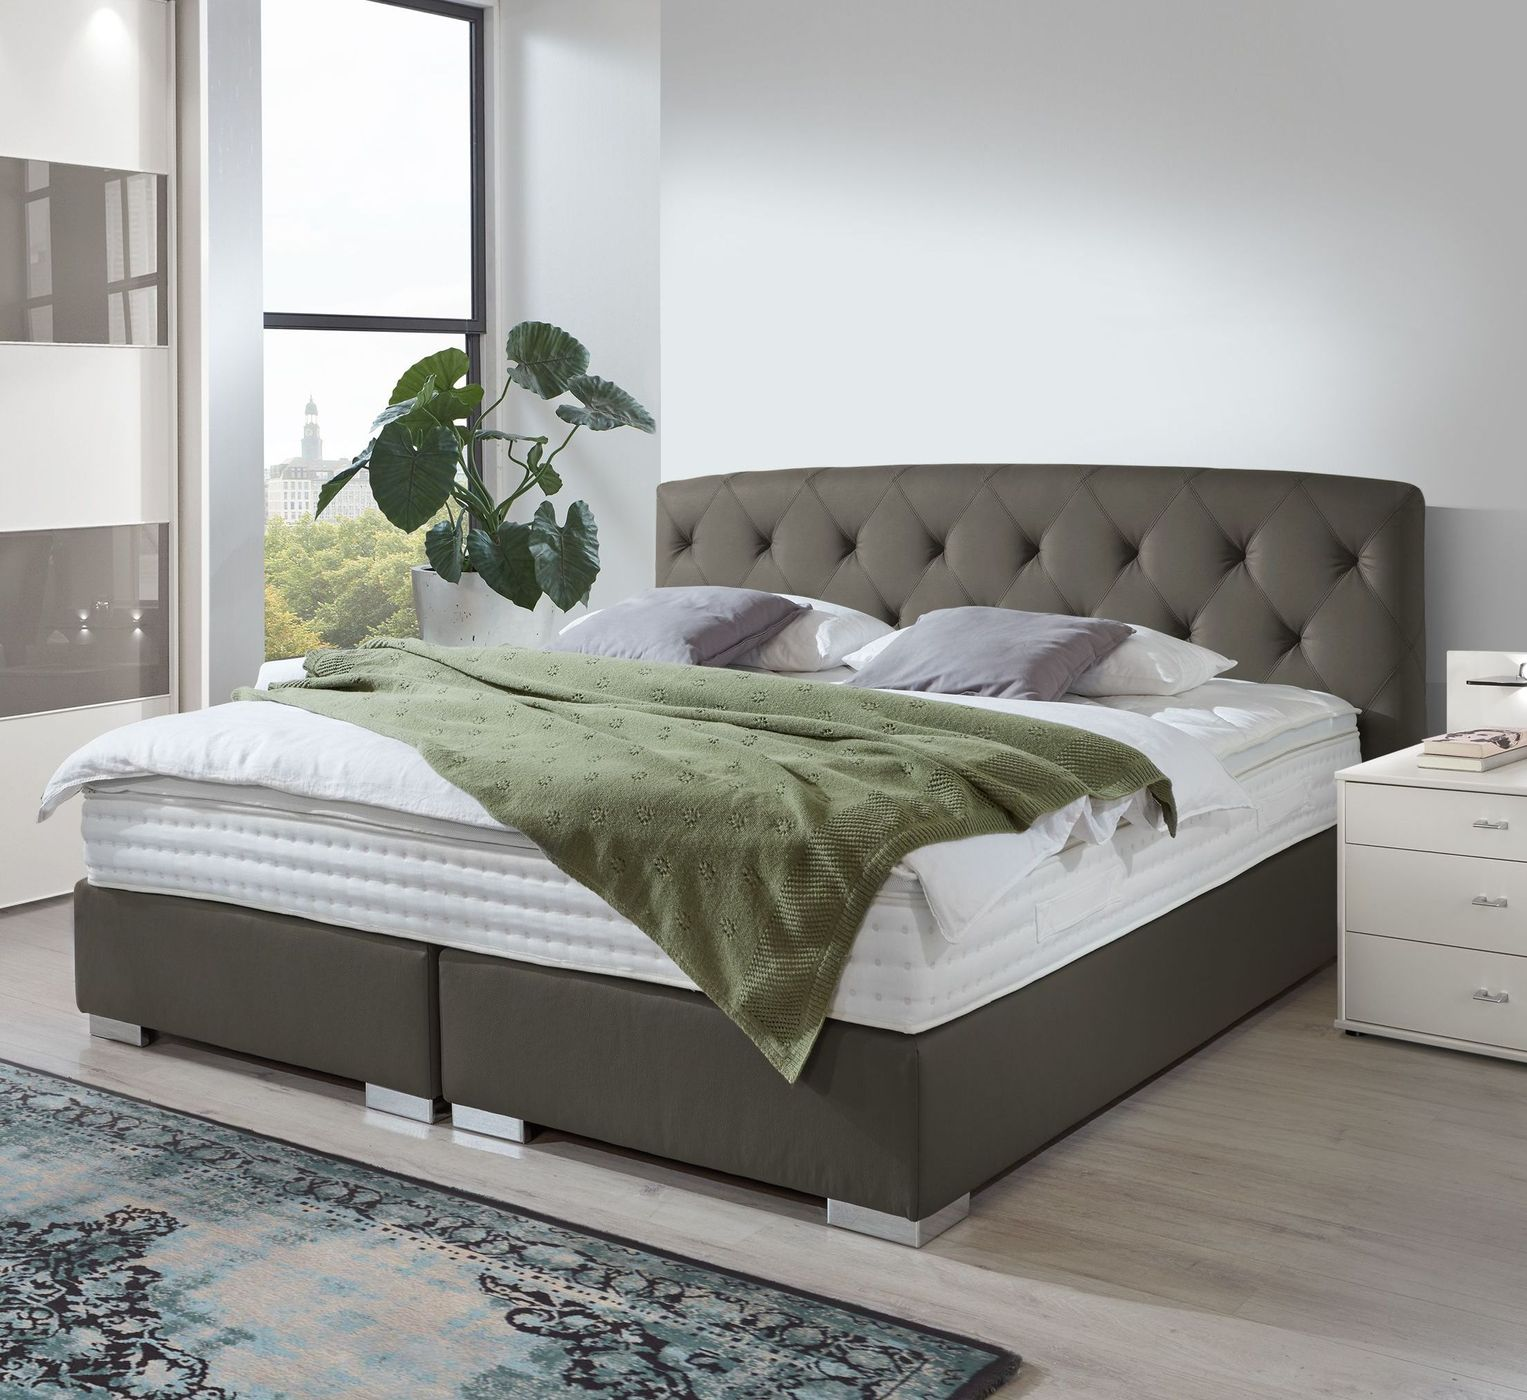 boxspringbett in chesterfield optik made in germany. Black Bedroom Furniture Sets. Home Design Ideas